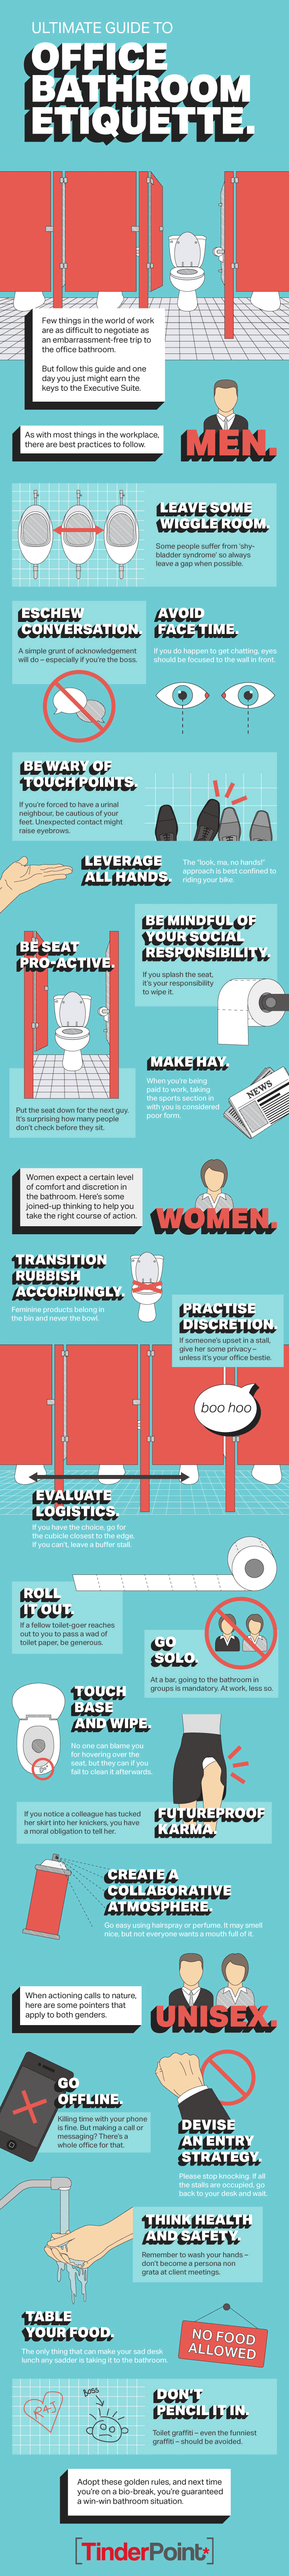 The ultimate guide to office bathroom etiquette